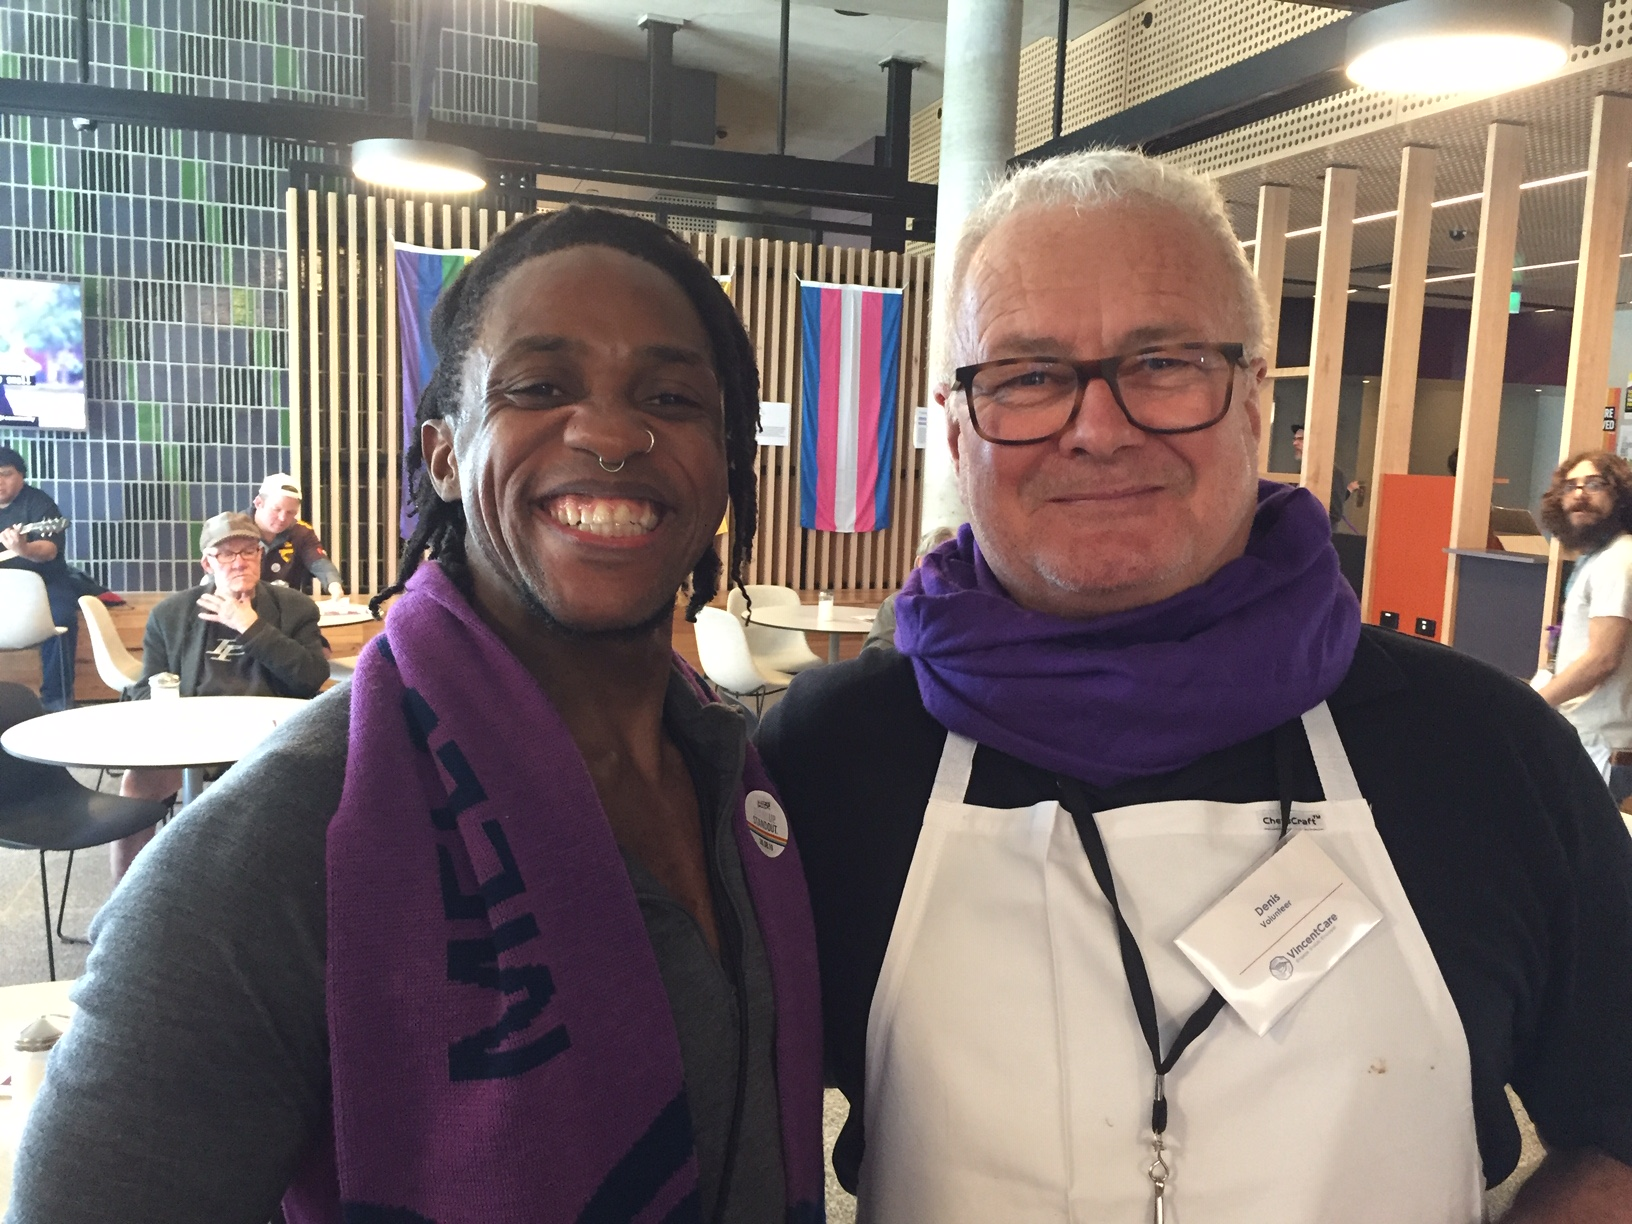 Two men wearing purple scarves